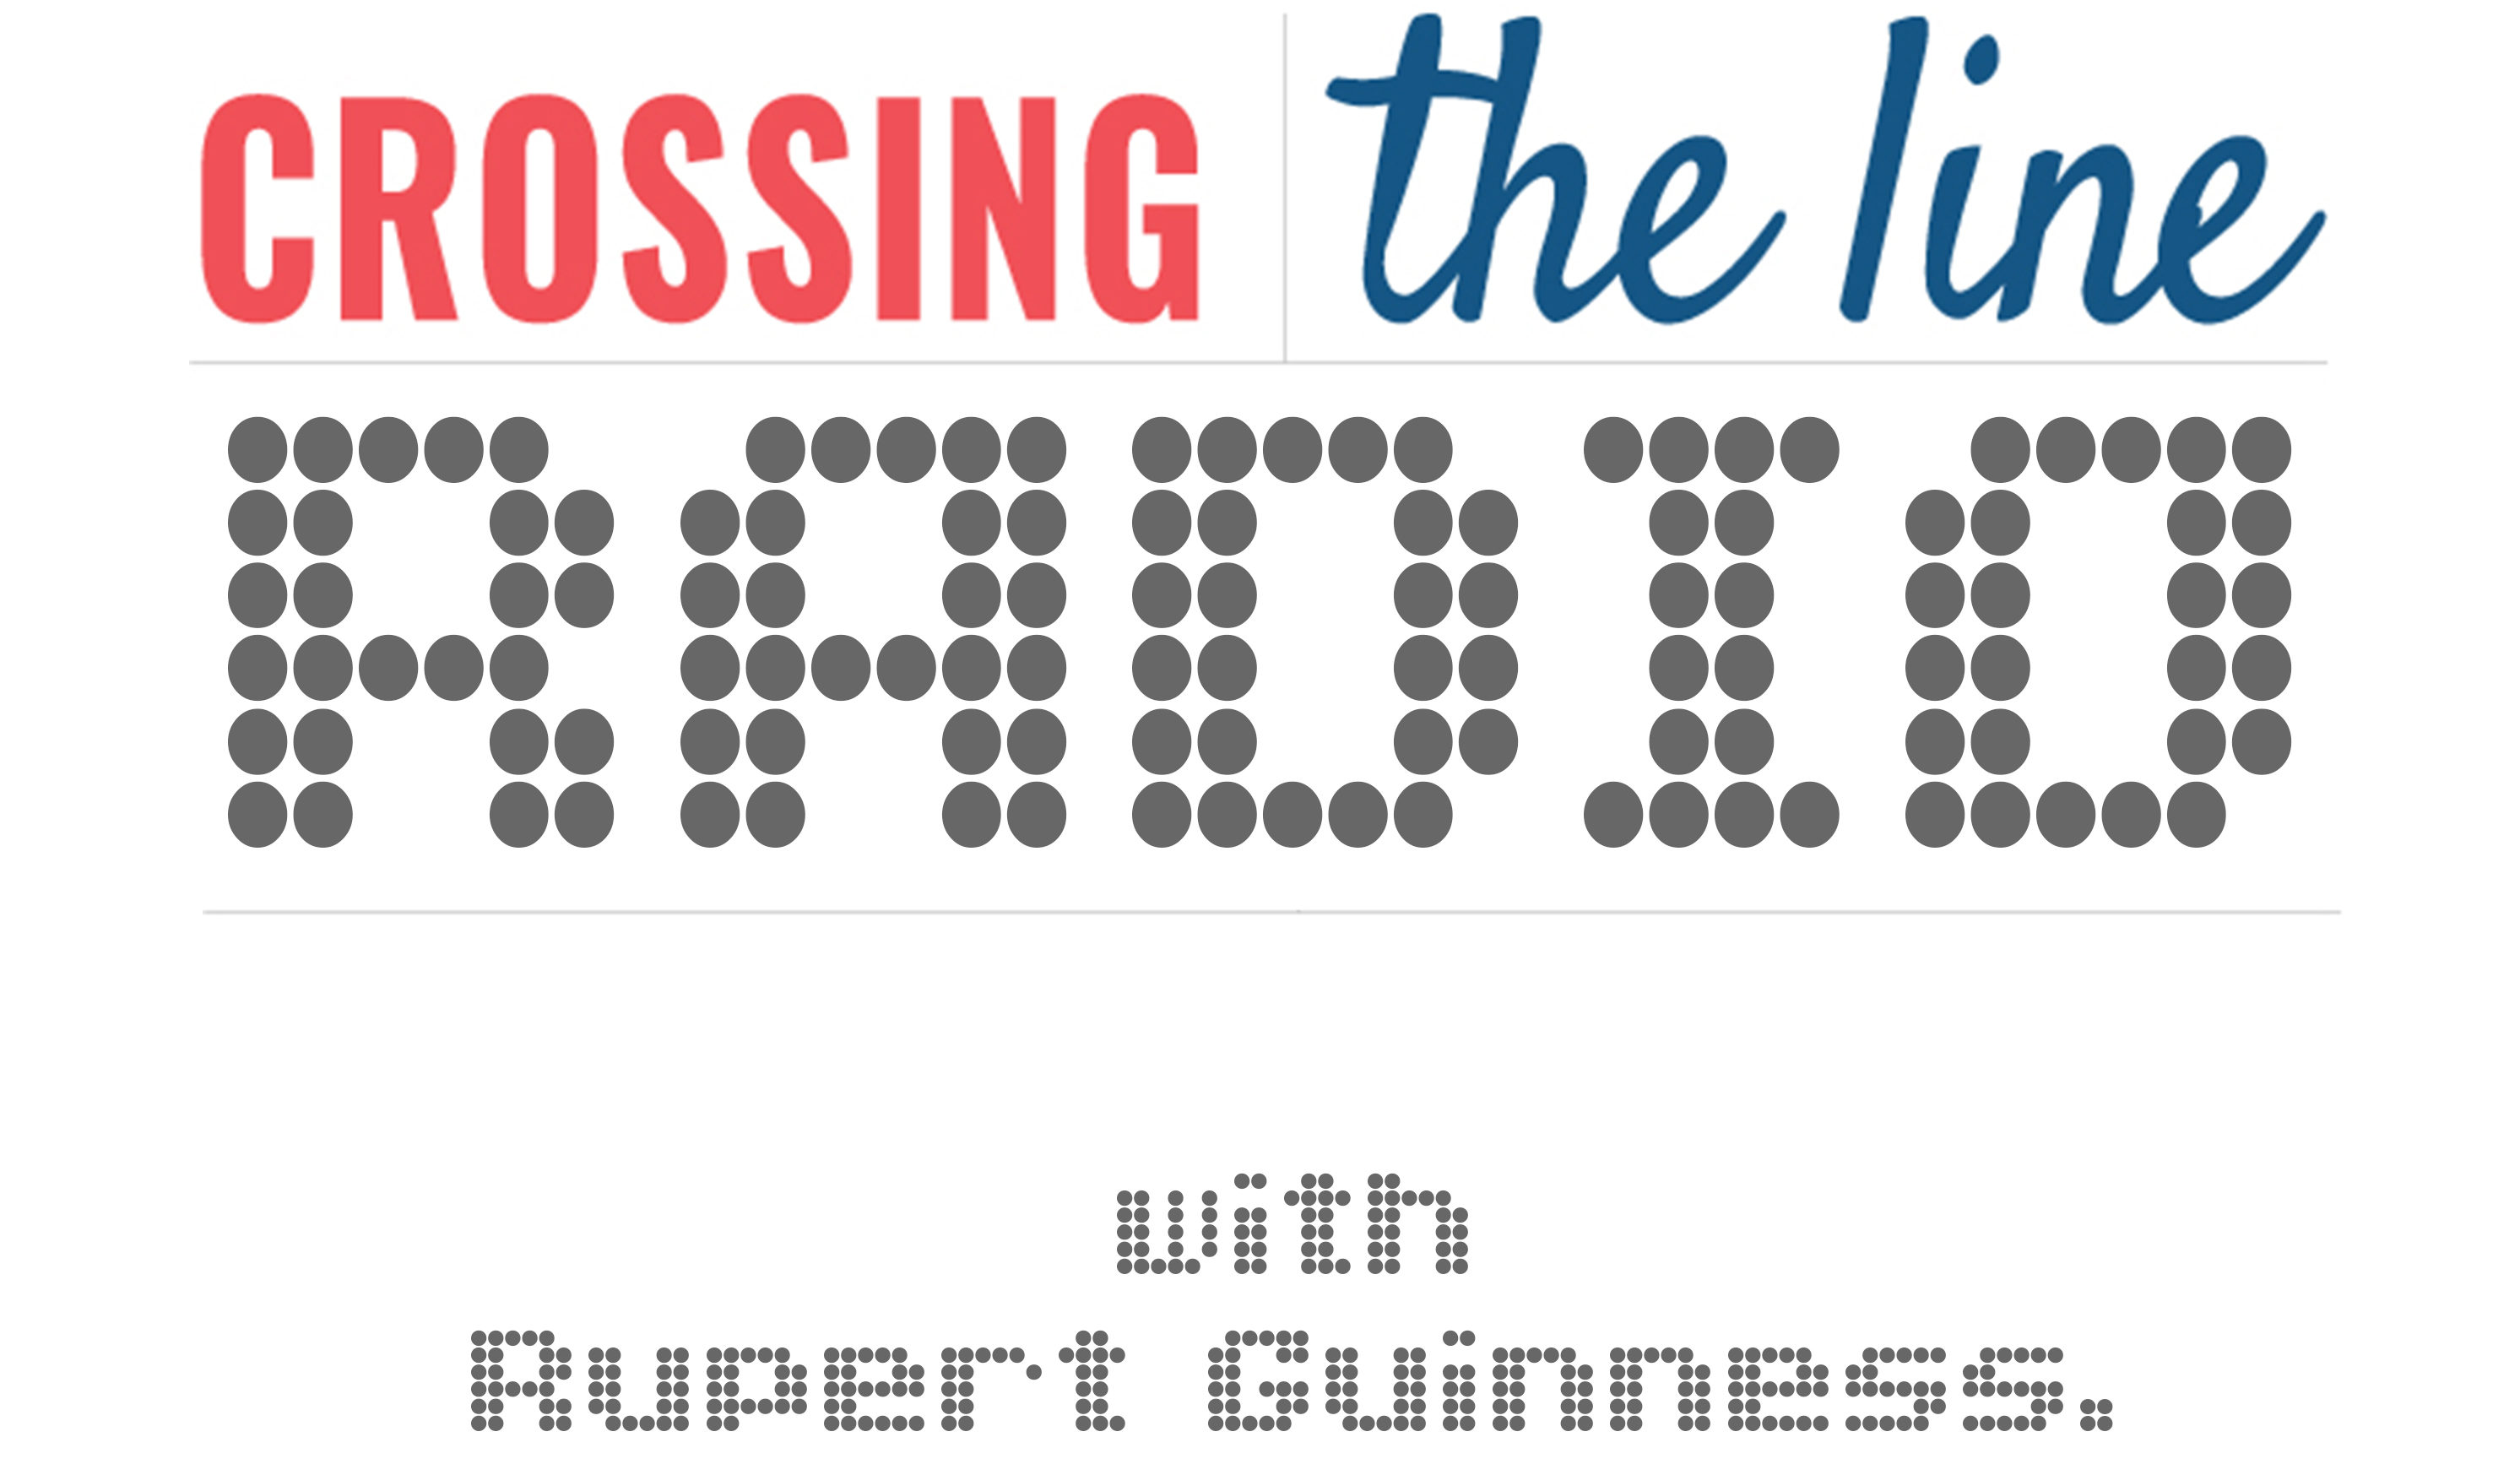 Crossing the Line Radio